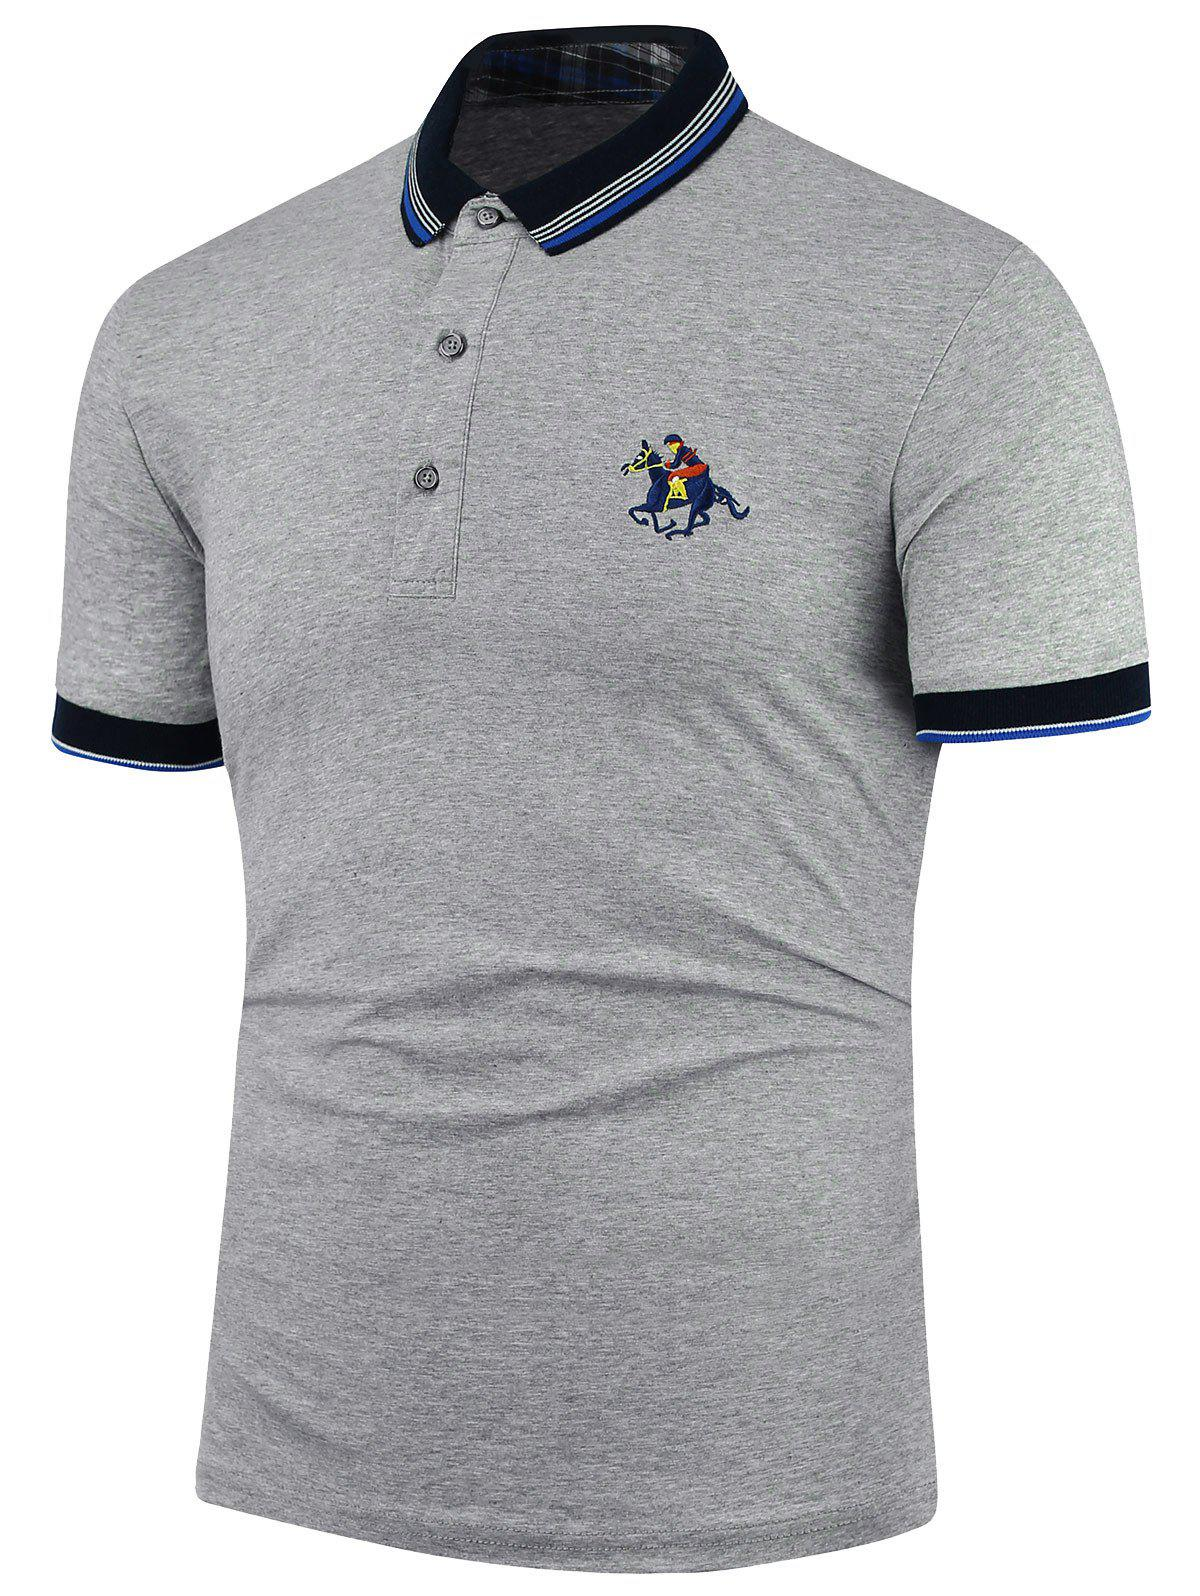 Horse embroidery stripe polo shirt gray xl in t shirts